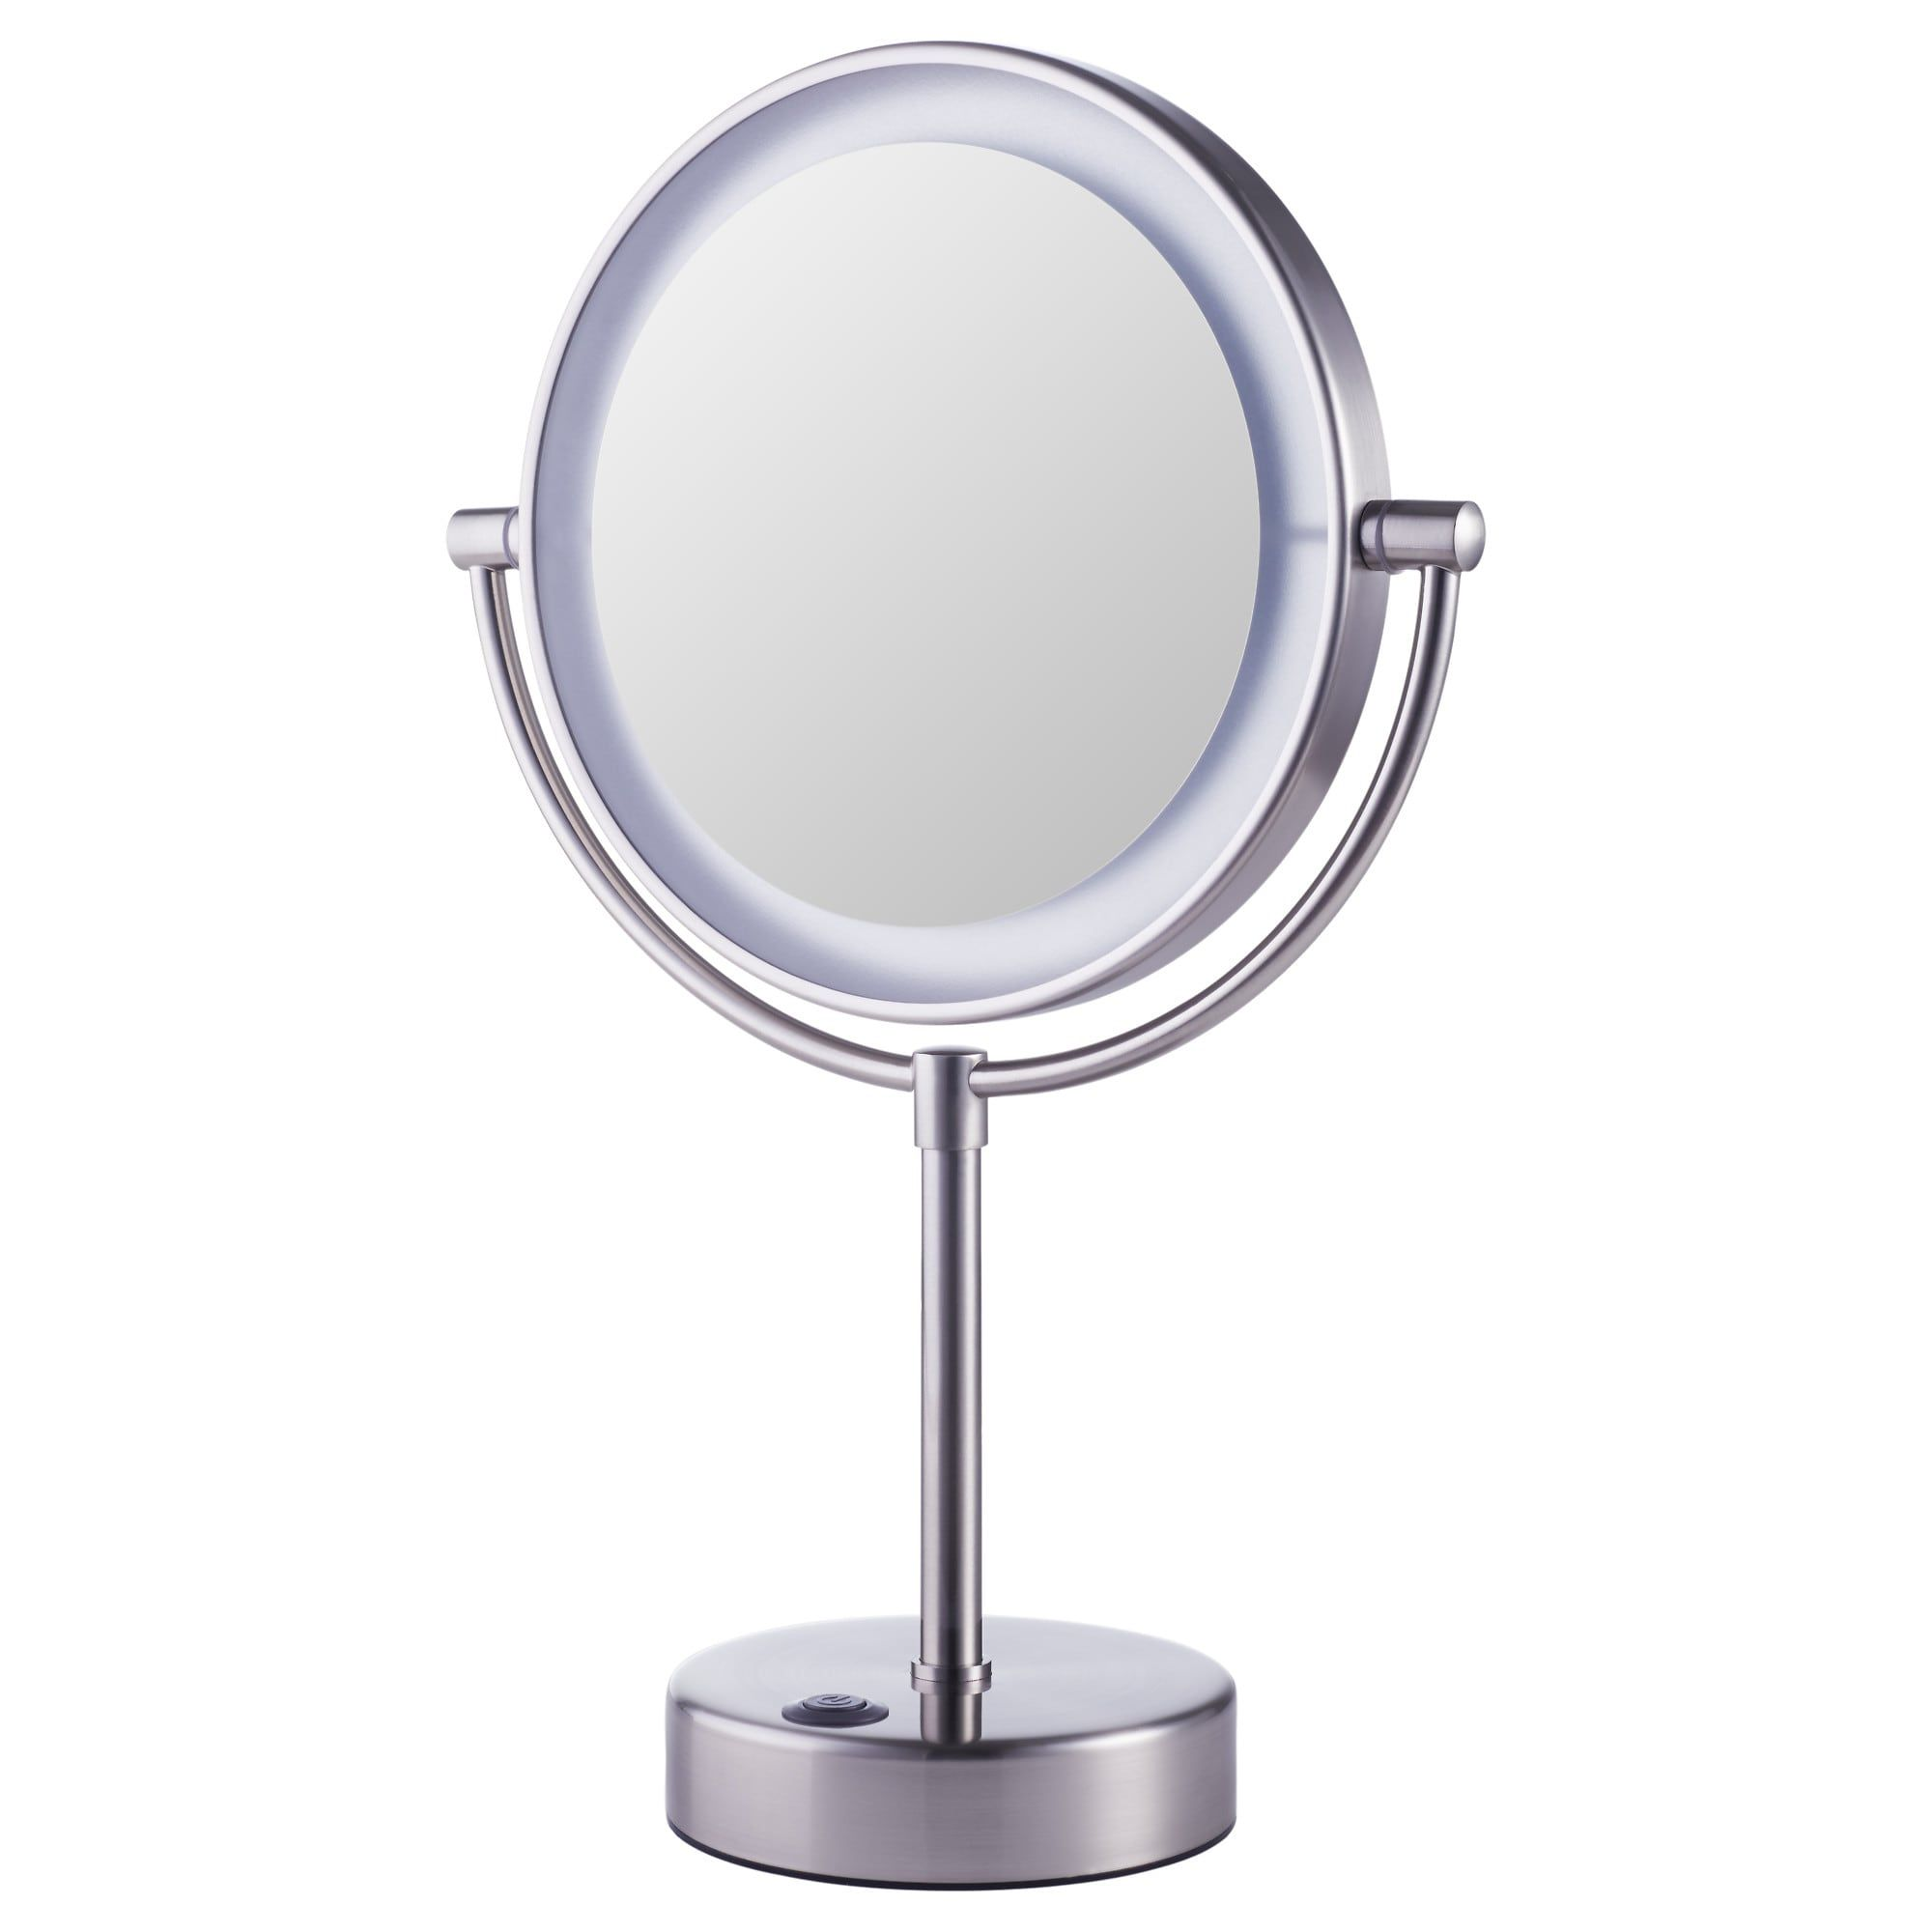 Kaitum Mirror With Built In Light Battery Operated 7 7 8